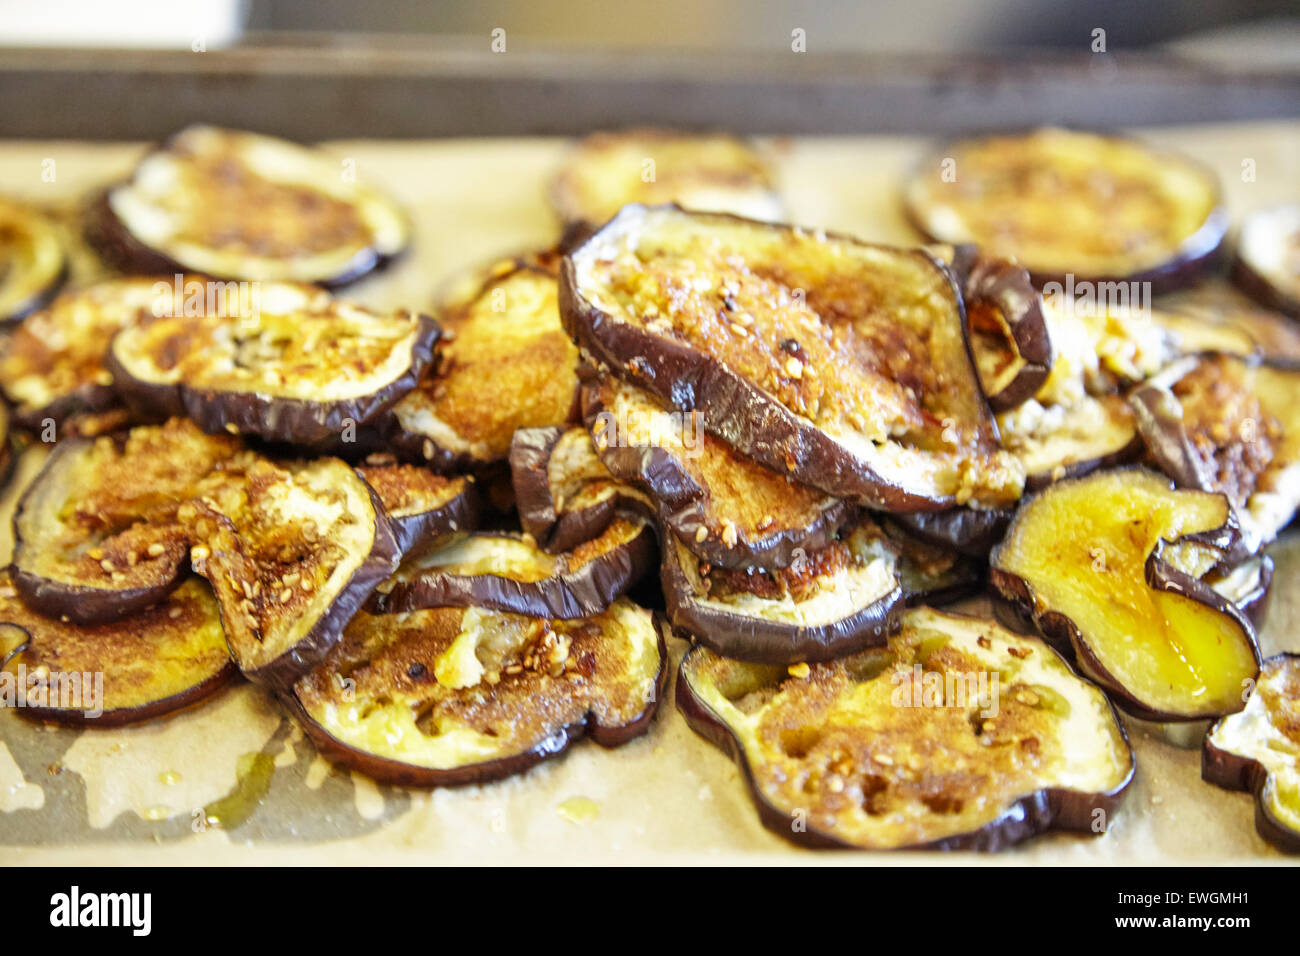 grilled eggplants on a cookie sheet on a grease paper bread crumbs on top - Stock Image